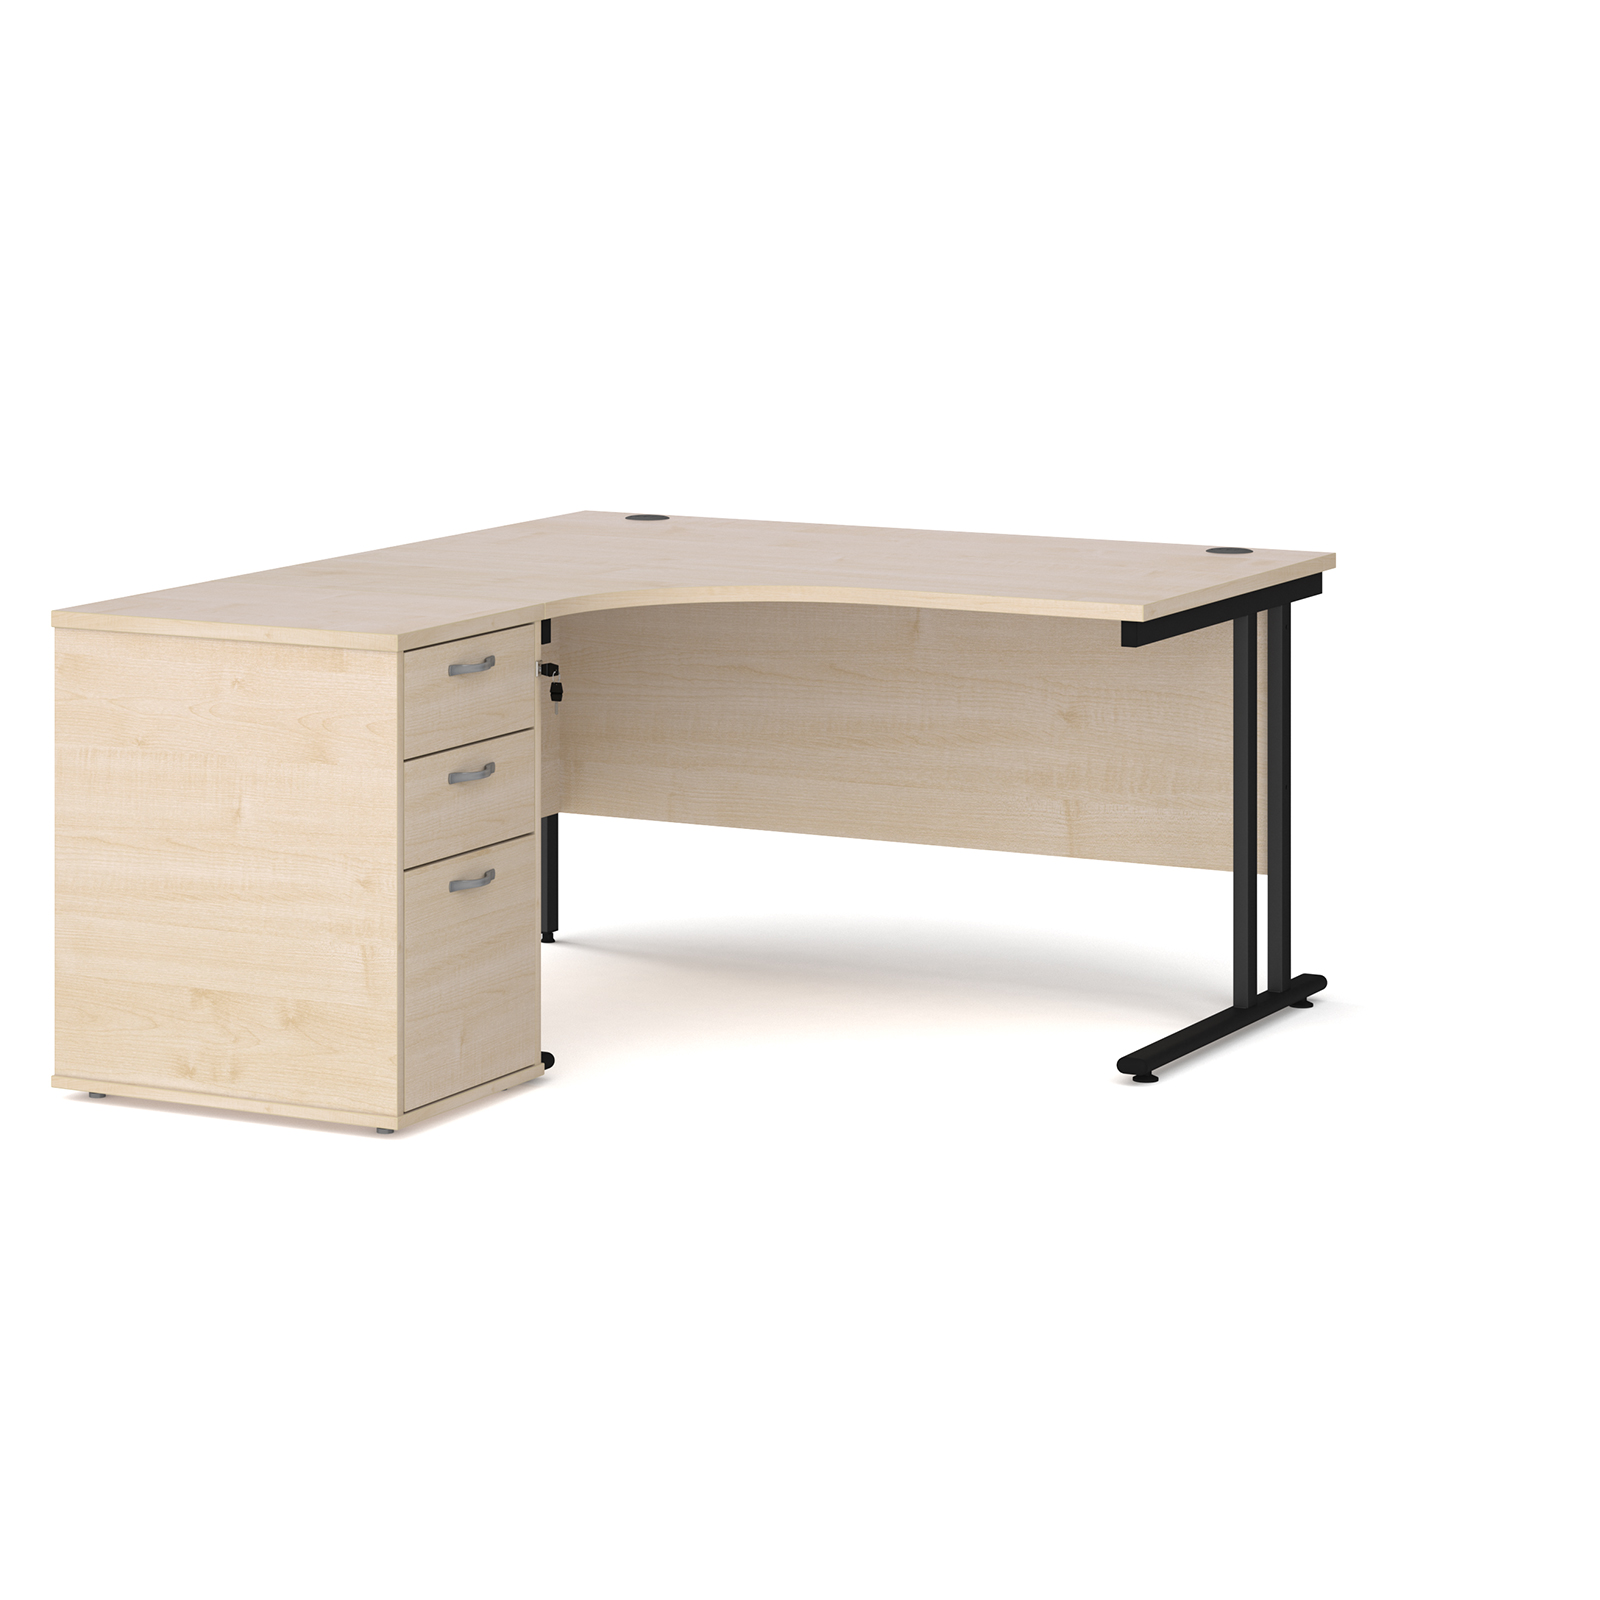 Left Handed Maestro 25 left hand ergonomic desk 1400mm with black cantilever frame and desk high pedestal - maple